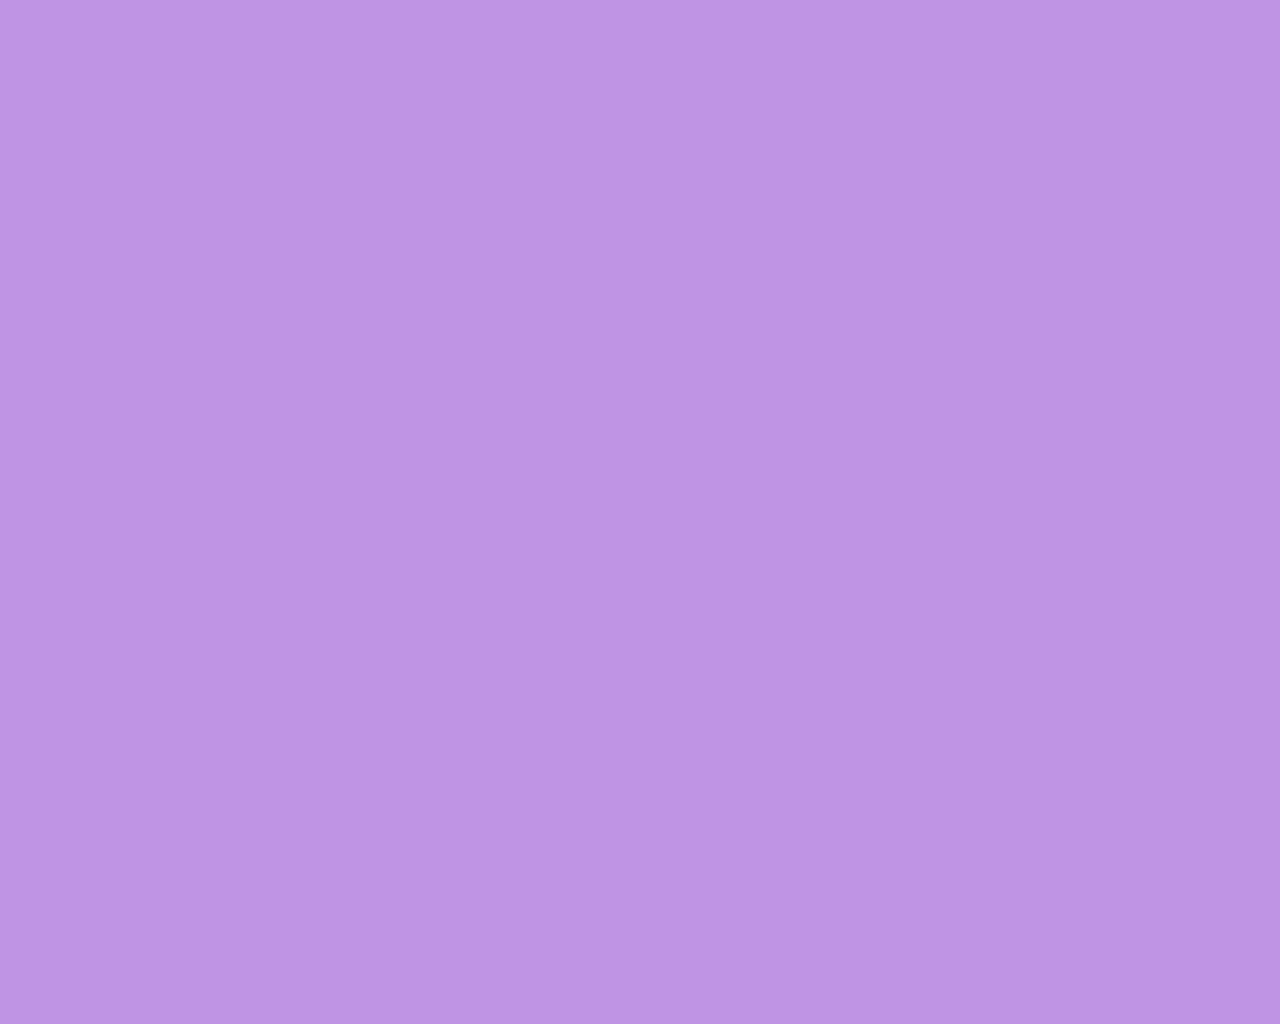 Lavender Backgrounds Related Keywords amp Suggestions 1280x1024